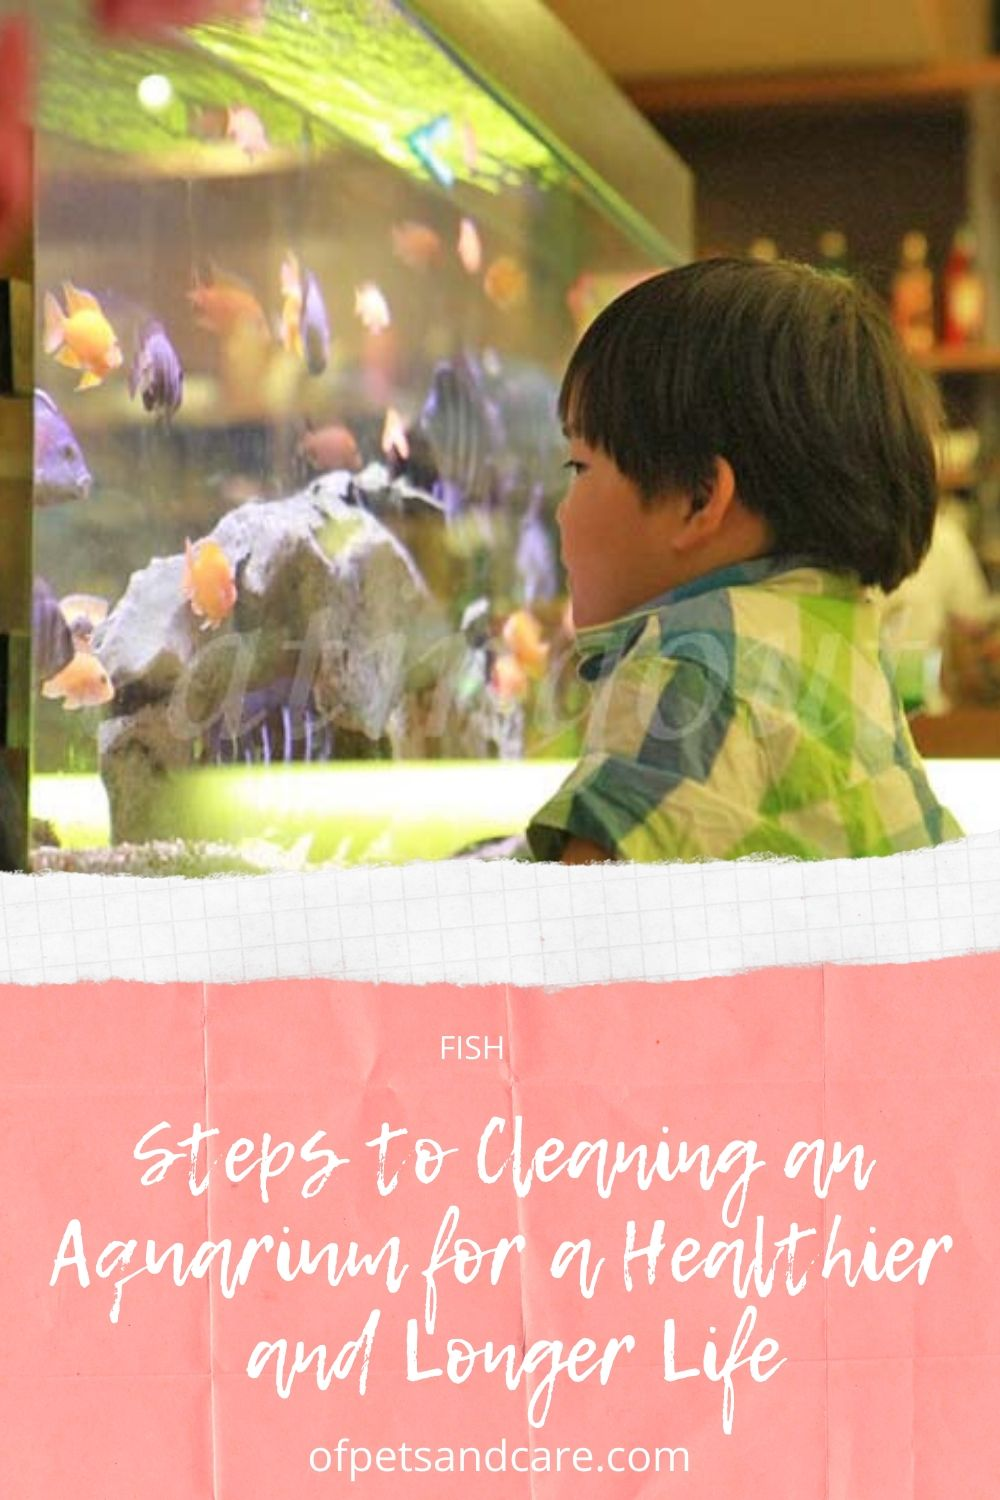 Steps to Cleaning an Aquarium for a Healthier and Longer Life